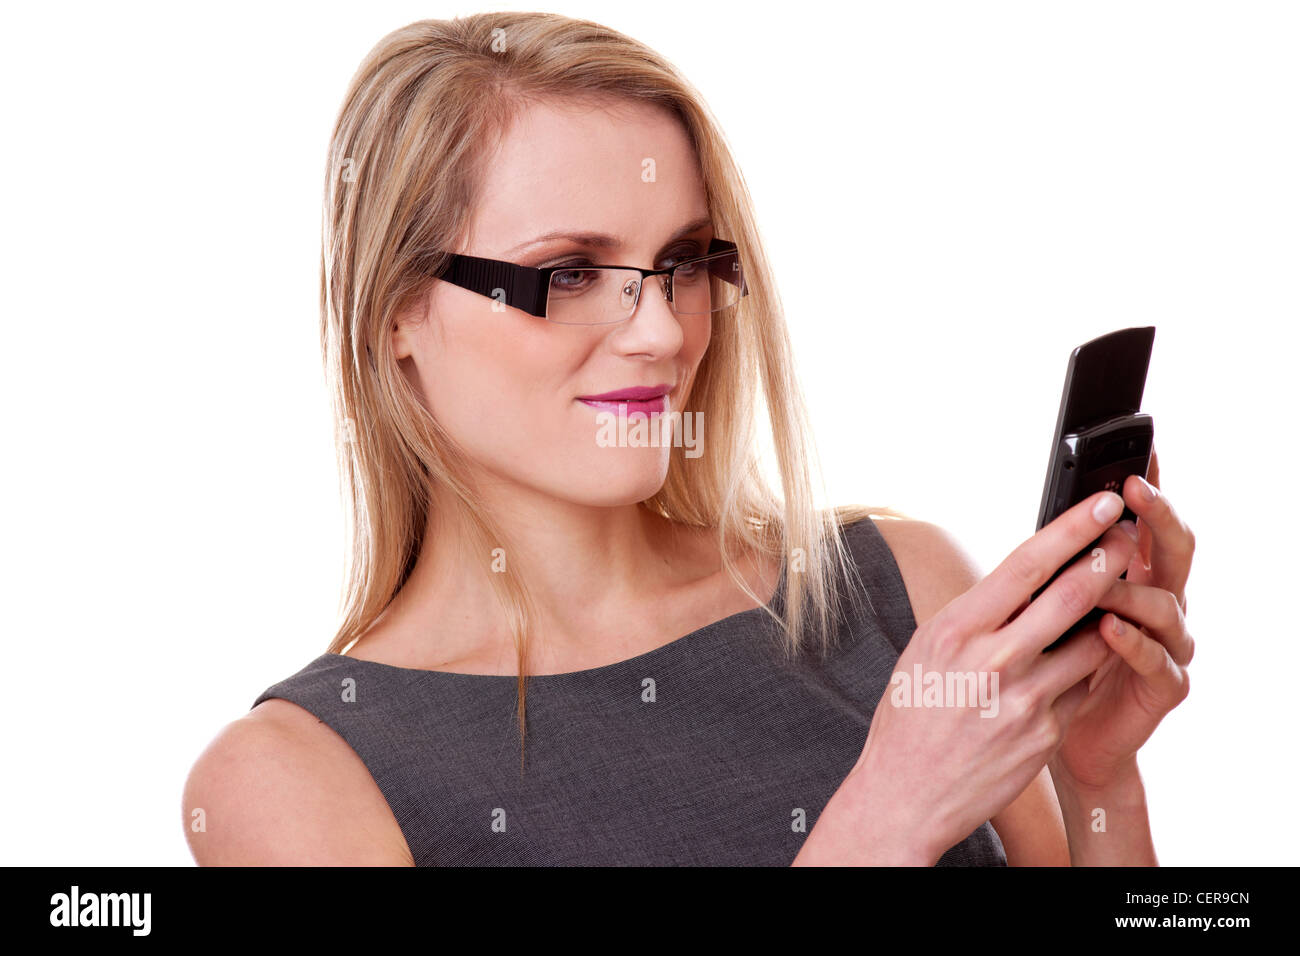 blonde woman sending a text message or email - Stock Image